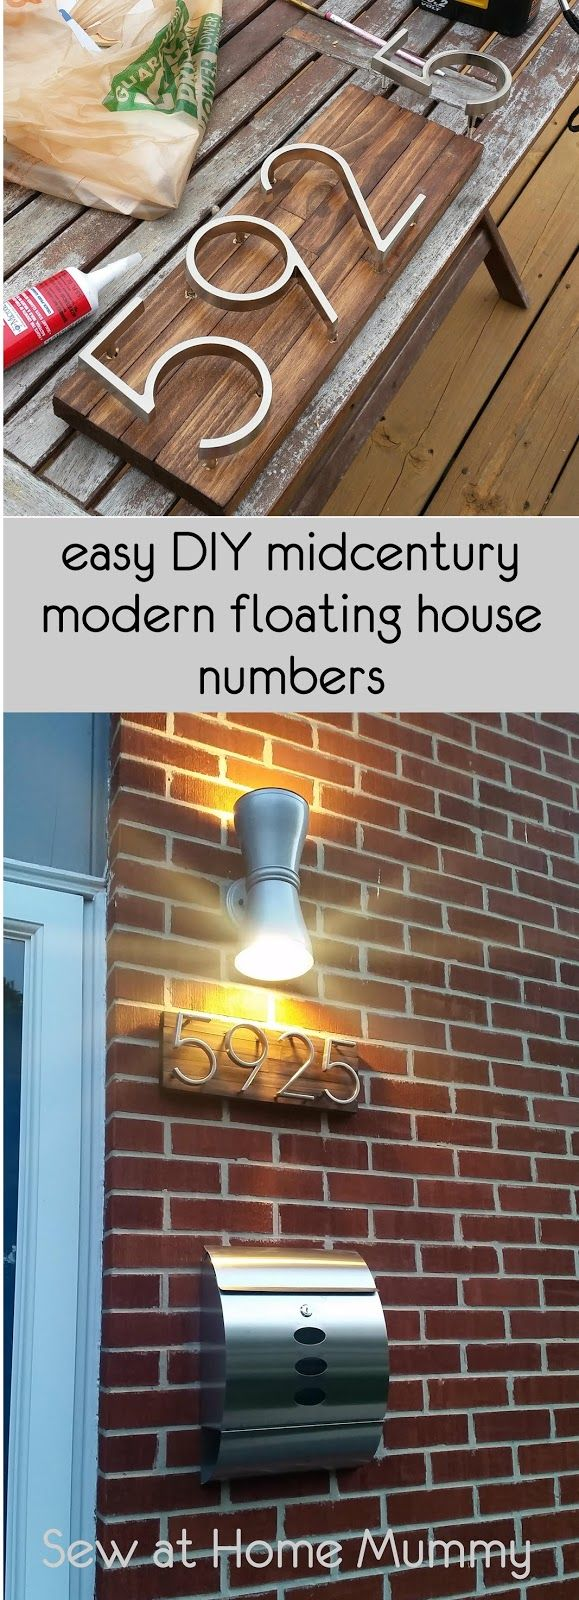 easy DIY midcentury modern floating house numbers / address numbers using paint sticks! | tutorial by Sew at Home Mummy